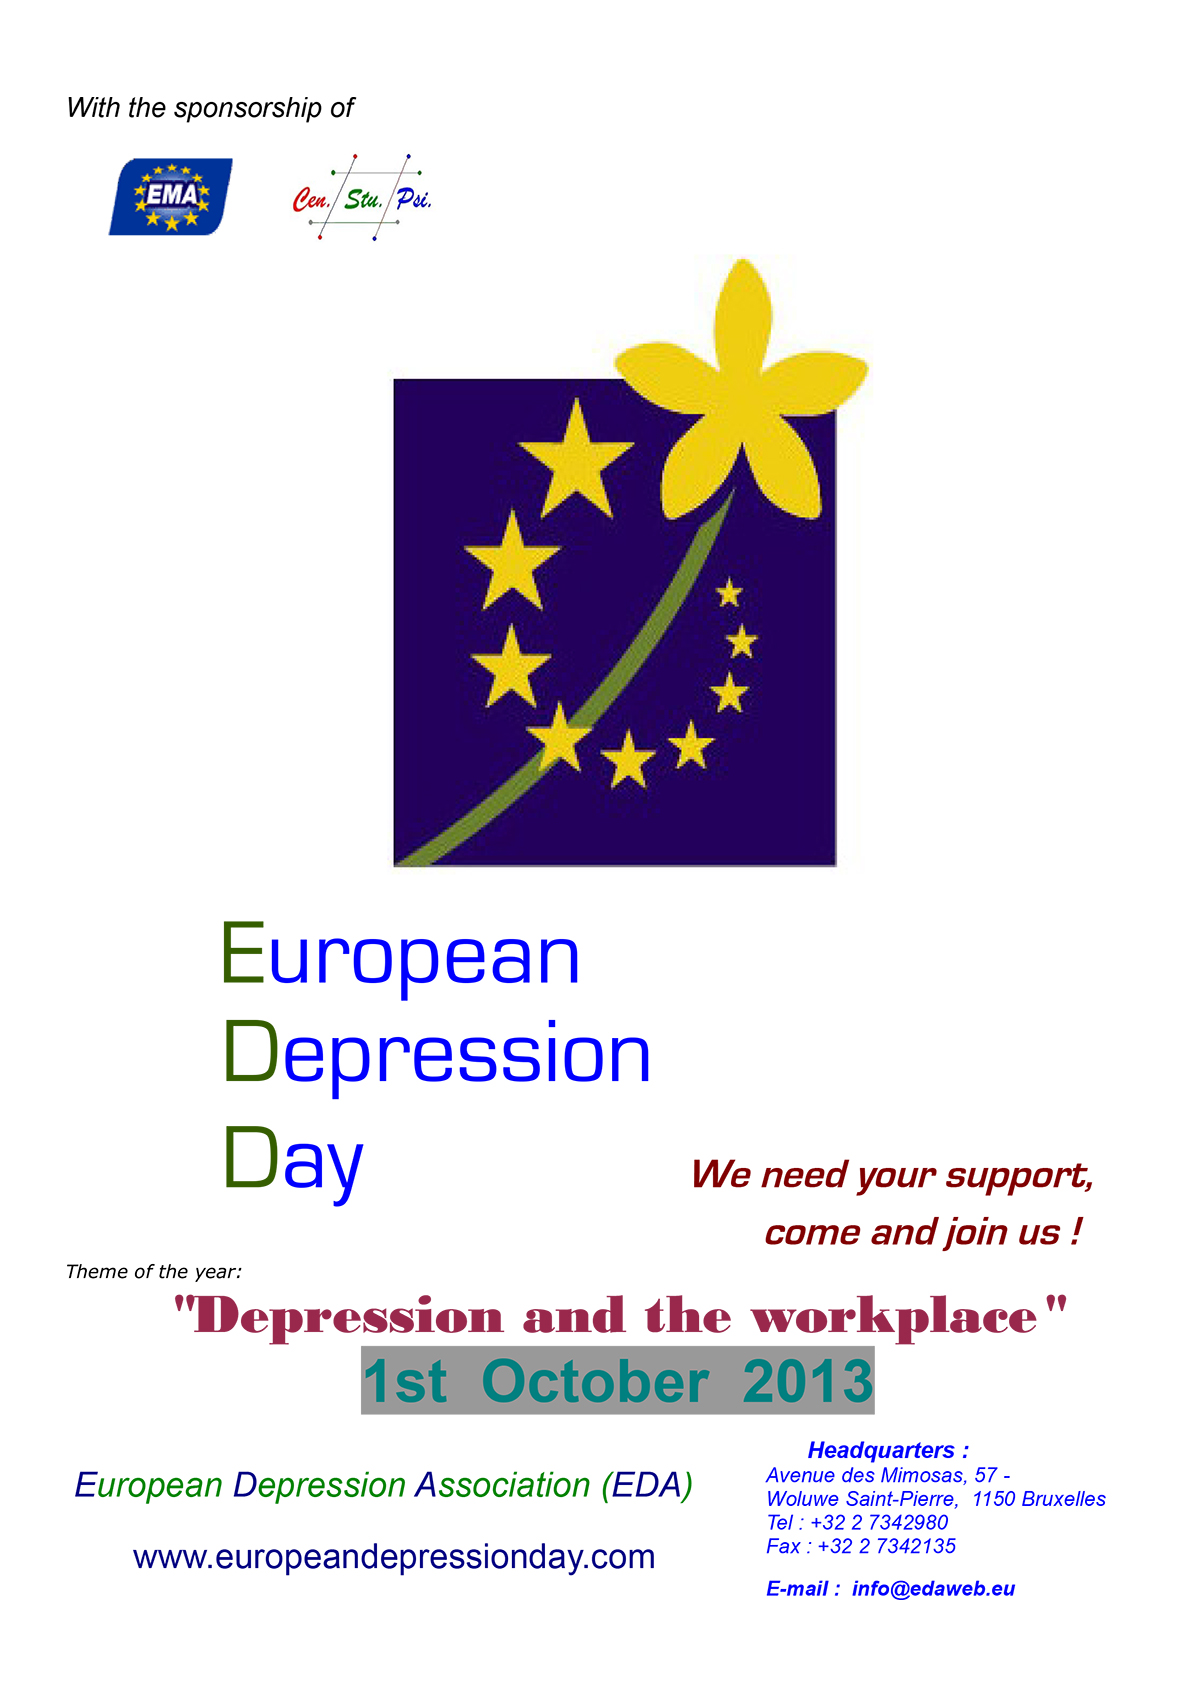 European Depression Day 2013